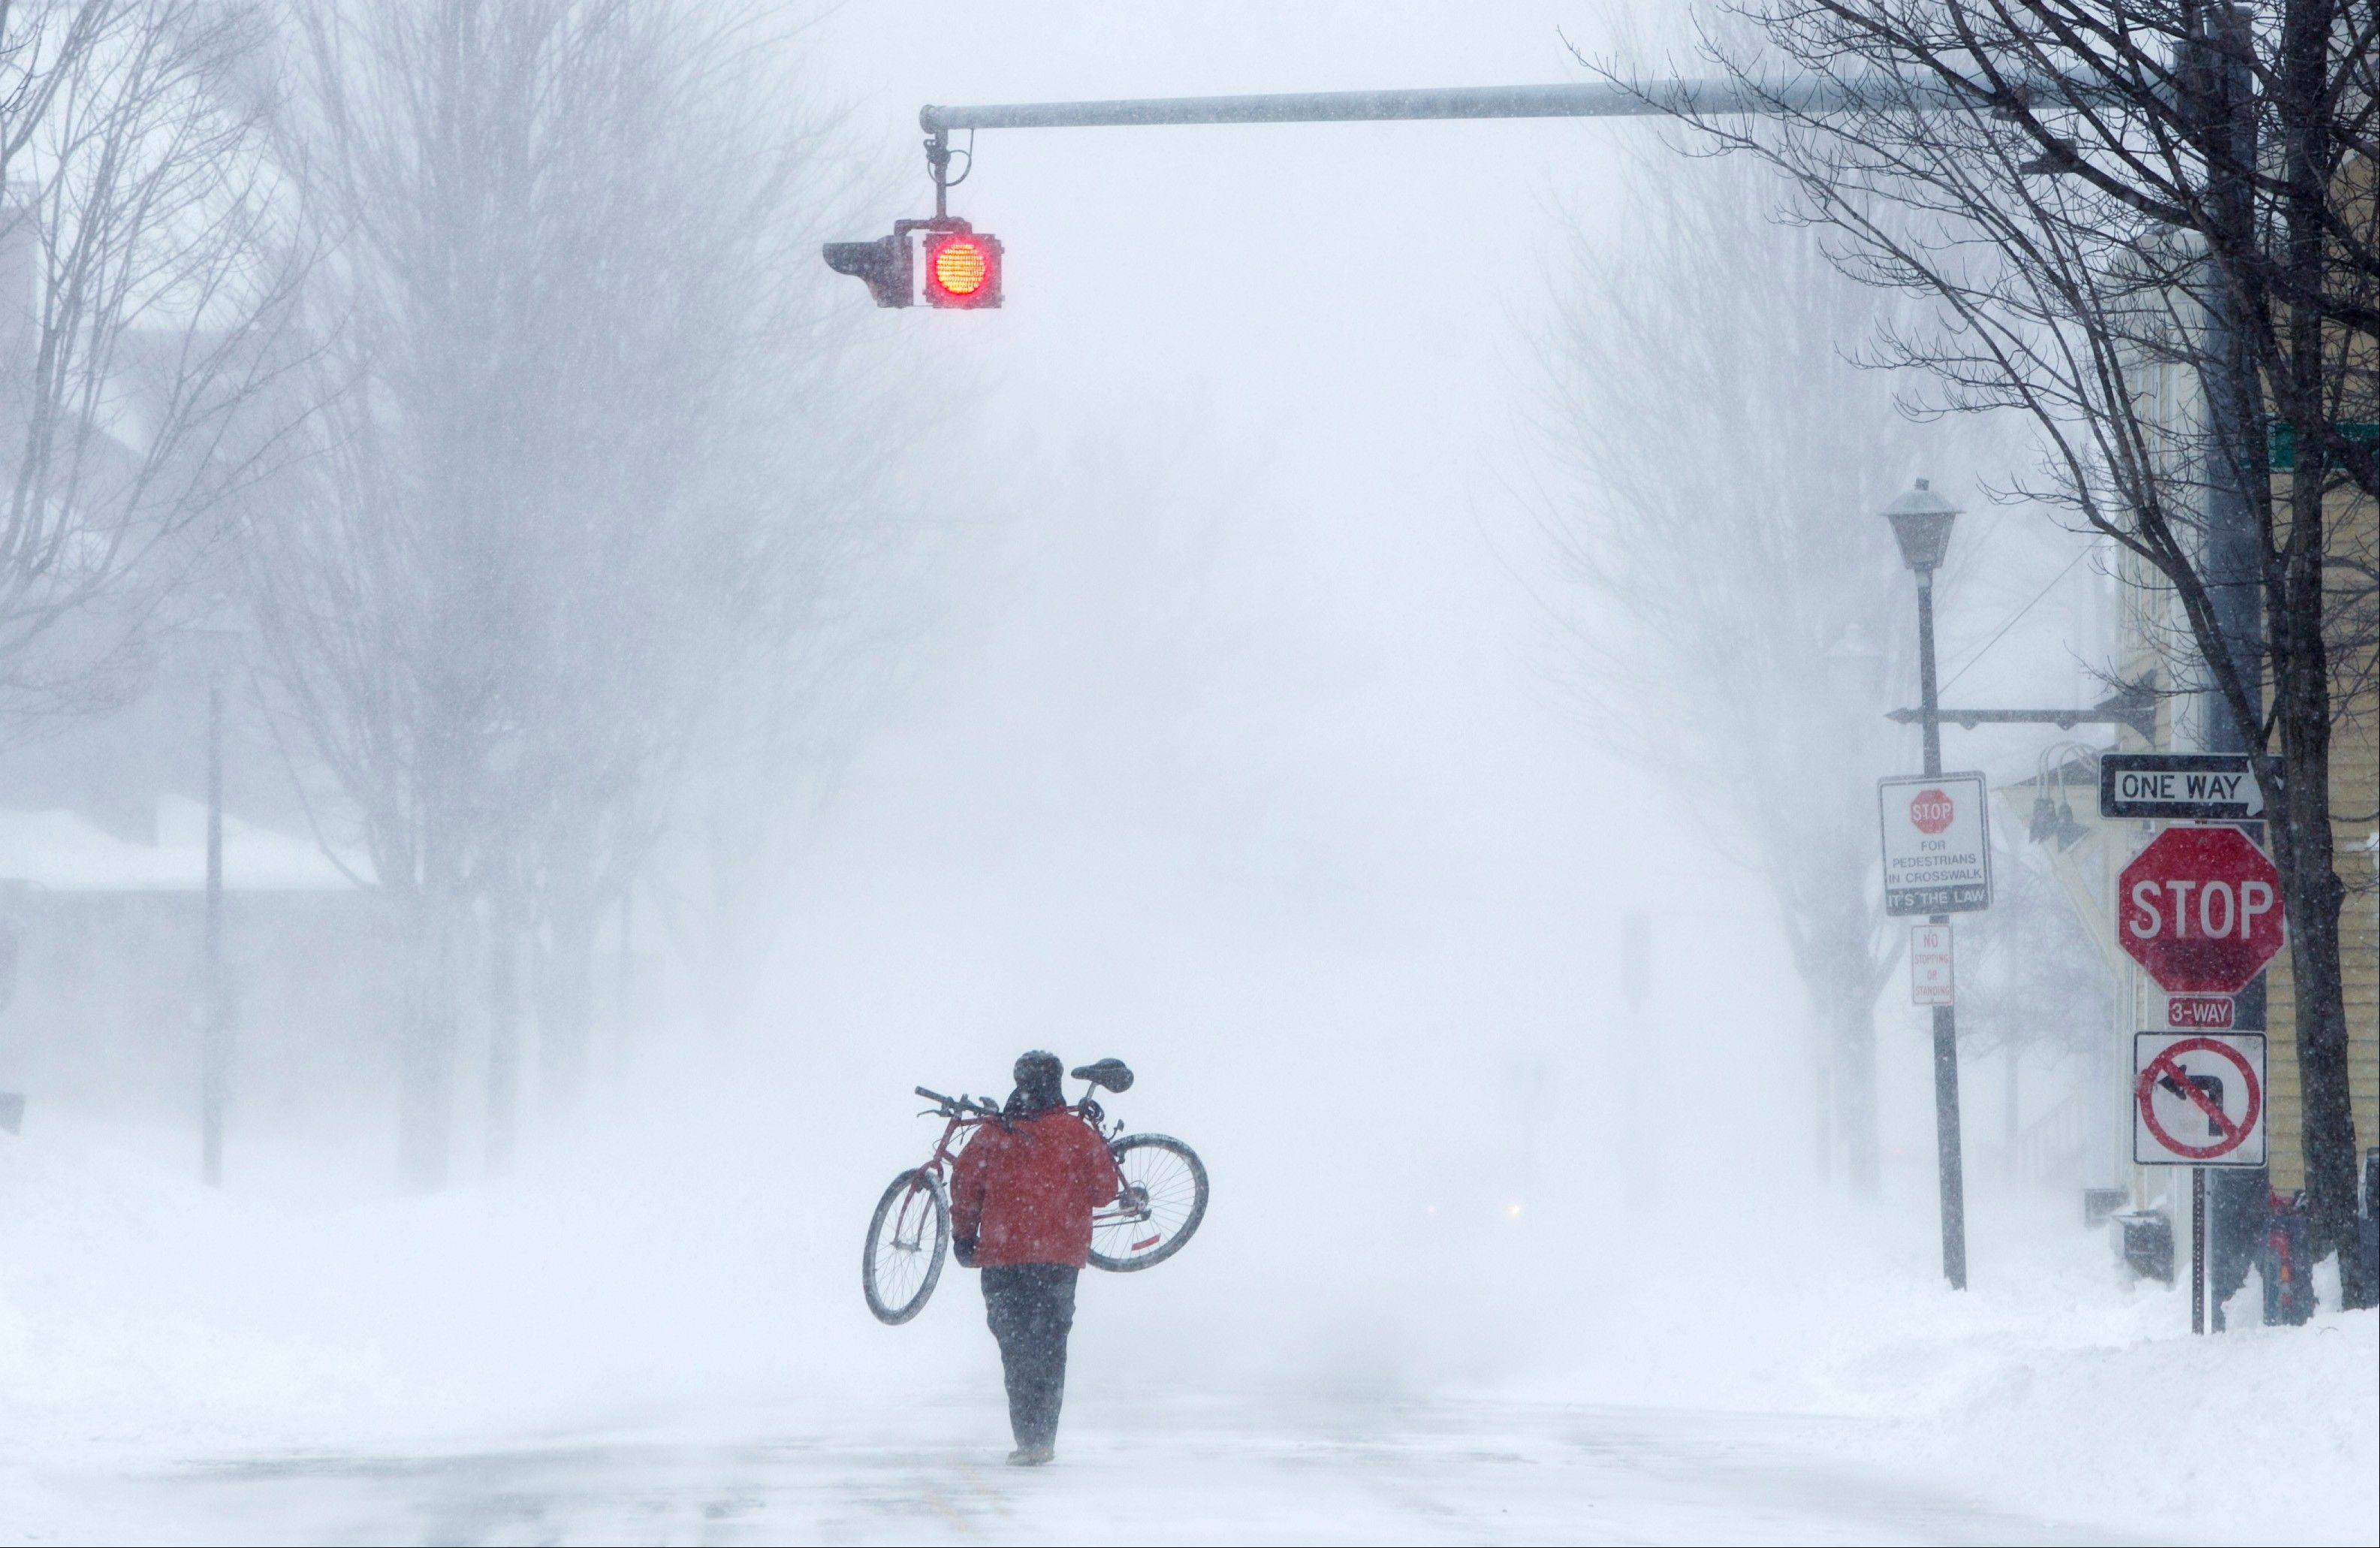 Juan Tavares carries his bike rather than risk riding on a snow-covered street during a blizzard, Saturday, Feb. 9, 2013, in Portland, Maine. The storm dumped more than 30 inches of snow as of Saturday afternoon, breaking the record for the biggest storm on record.